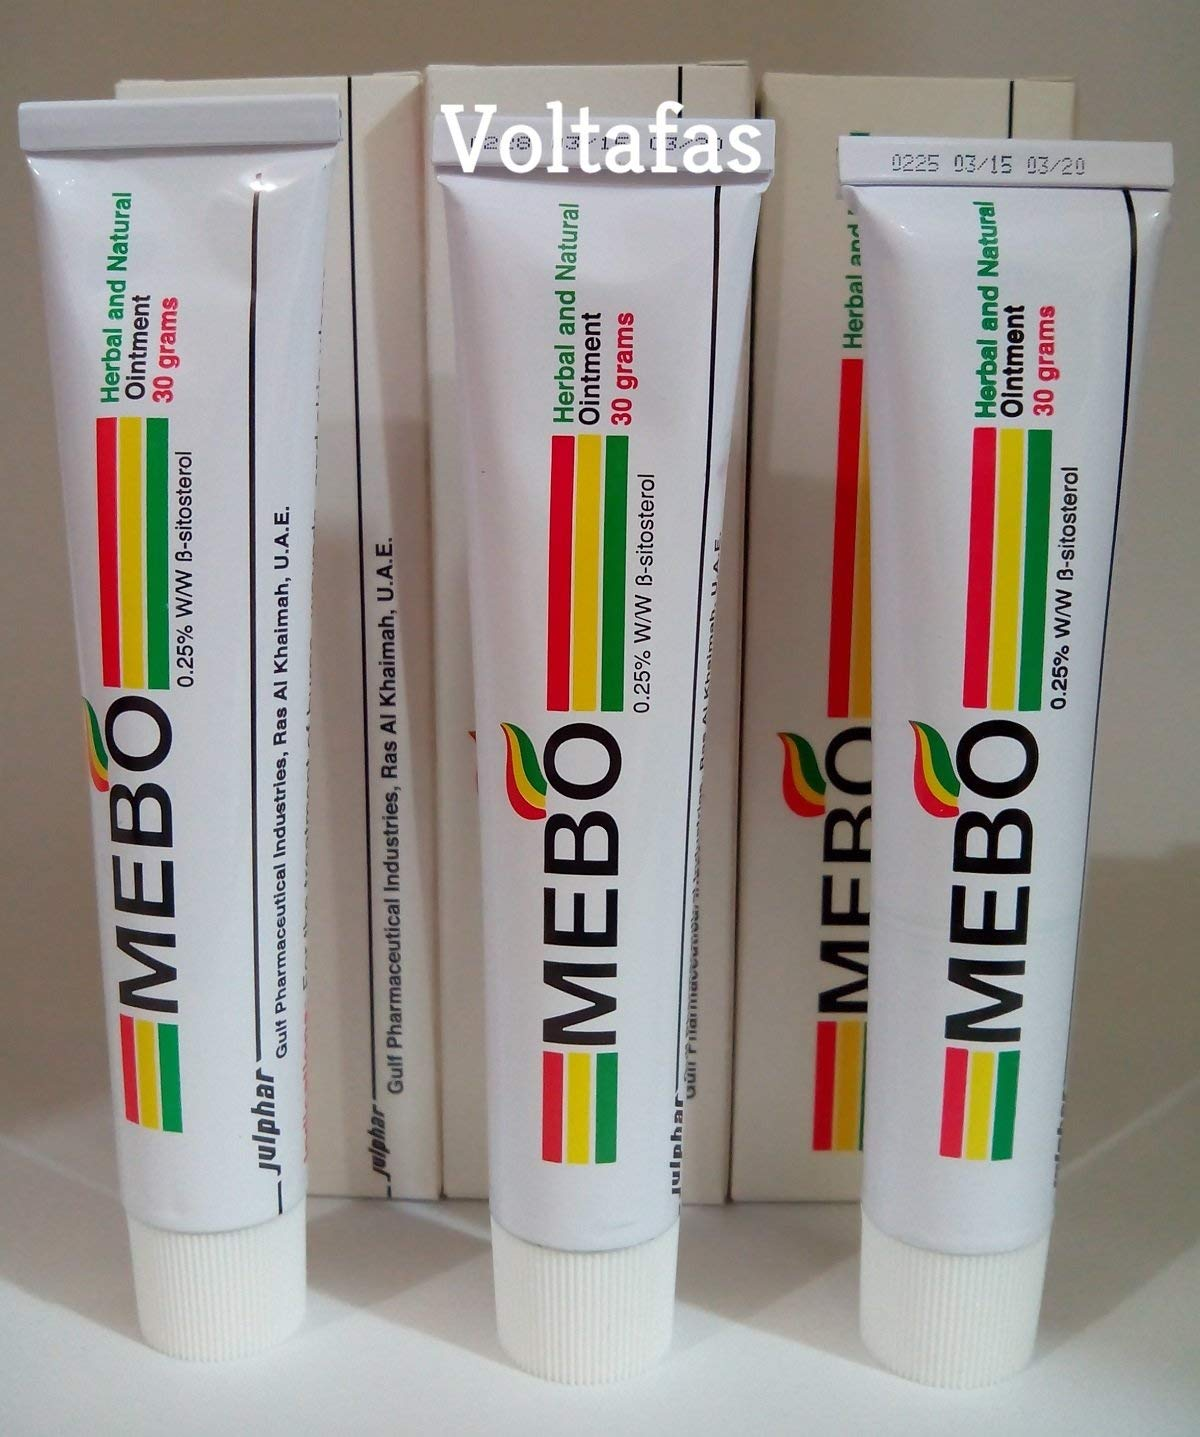 3 PCs of Mebo Burn Fast Pain Relief Healing Cream Leaves No Marks 30 Grams